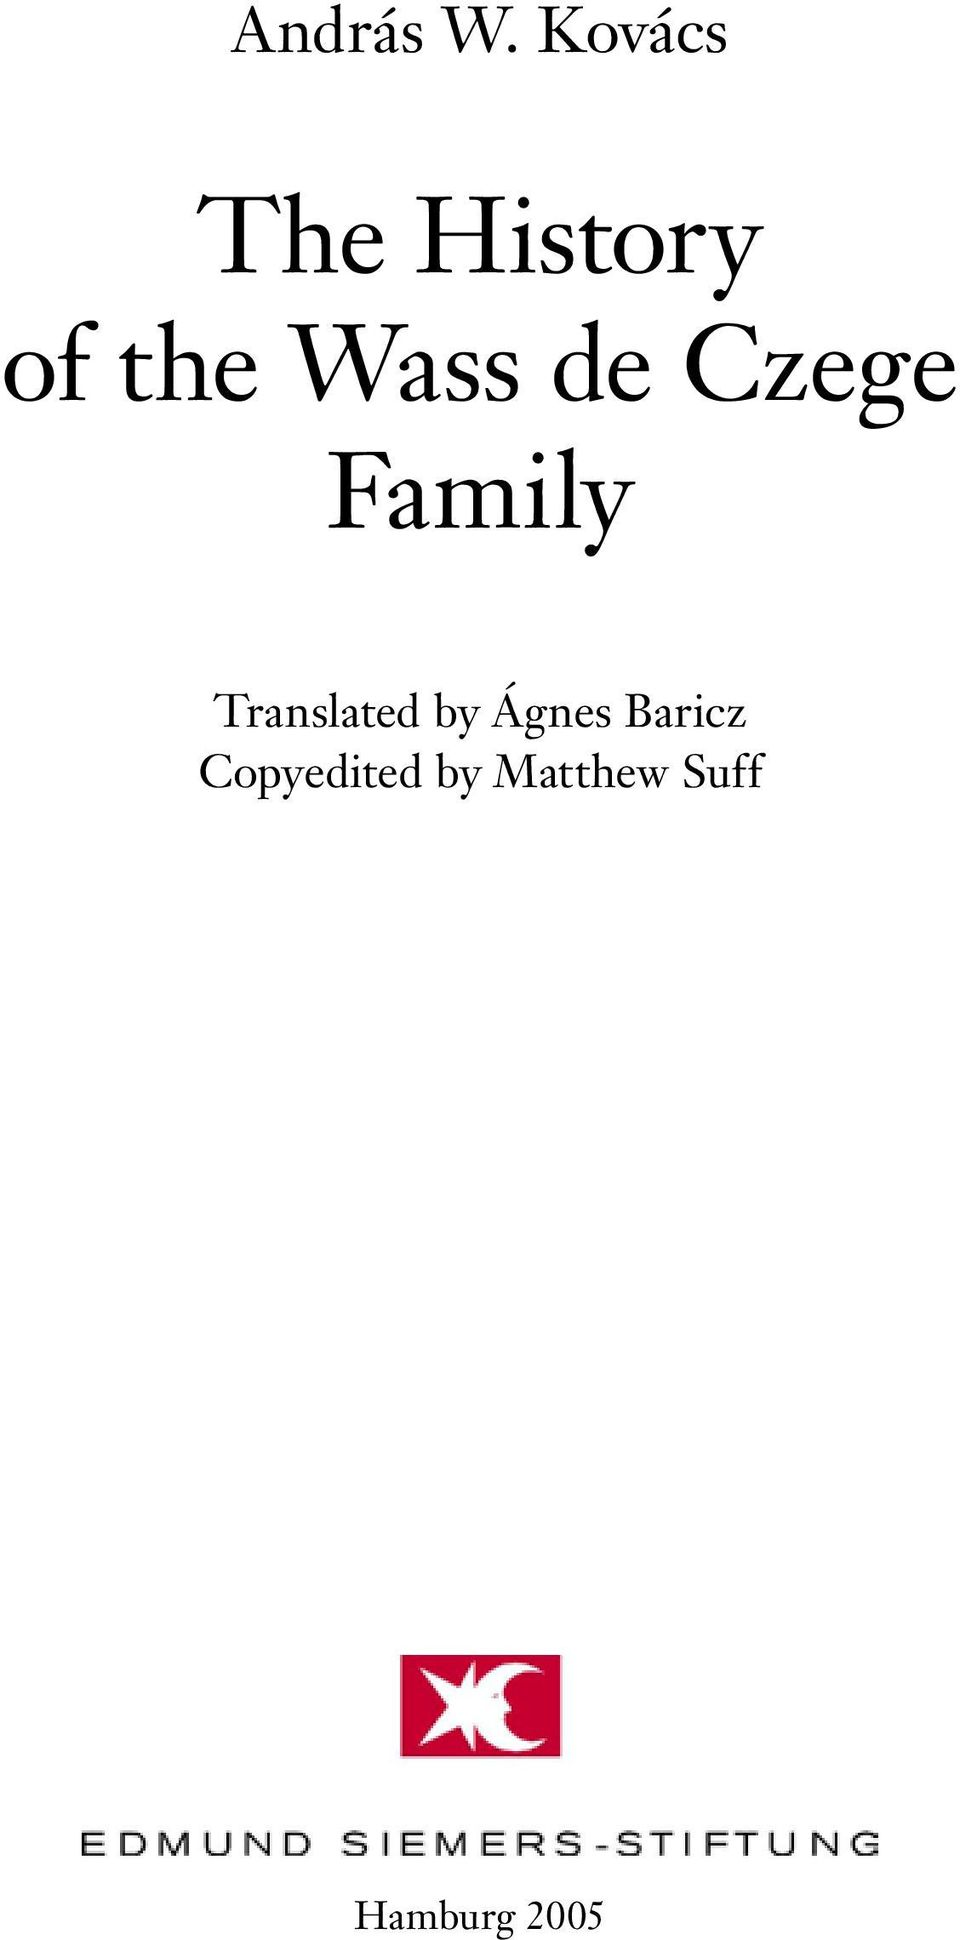 de Czege Family Translated by